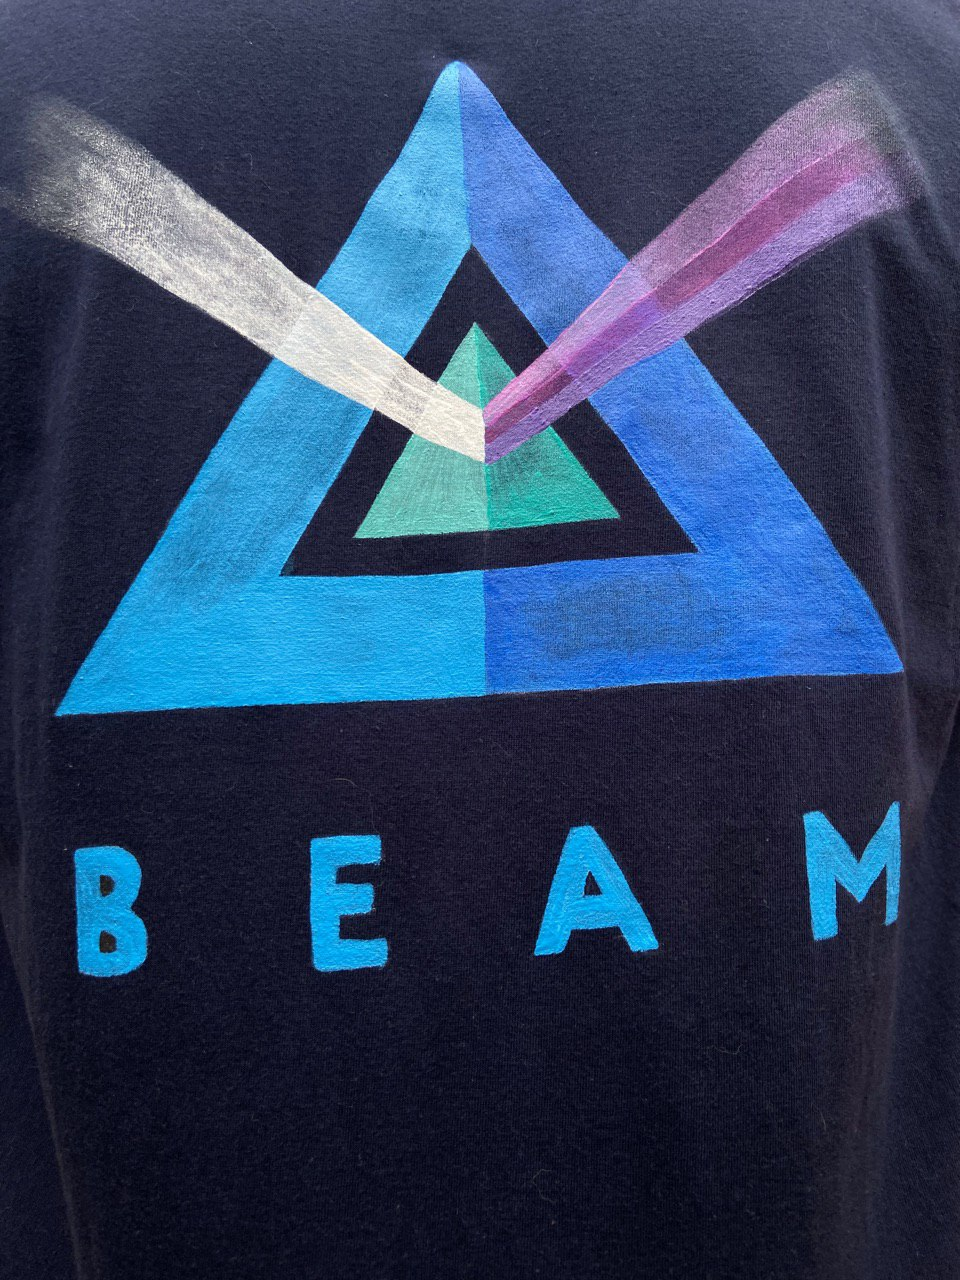 Beam T-shirt Black | Hand-Painted